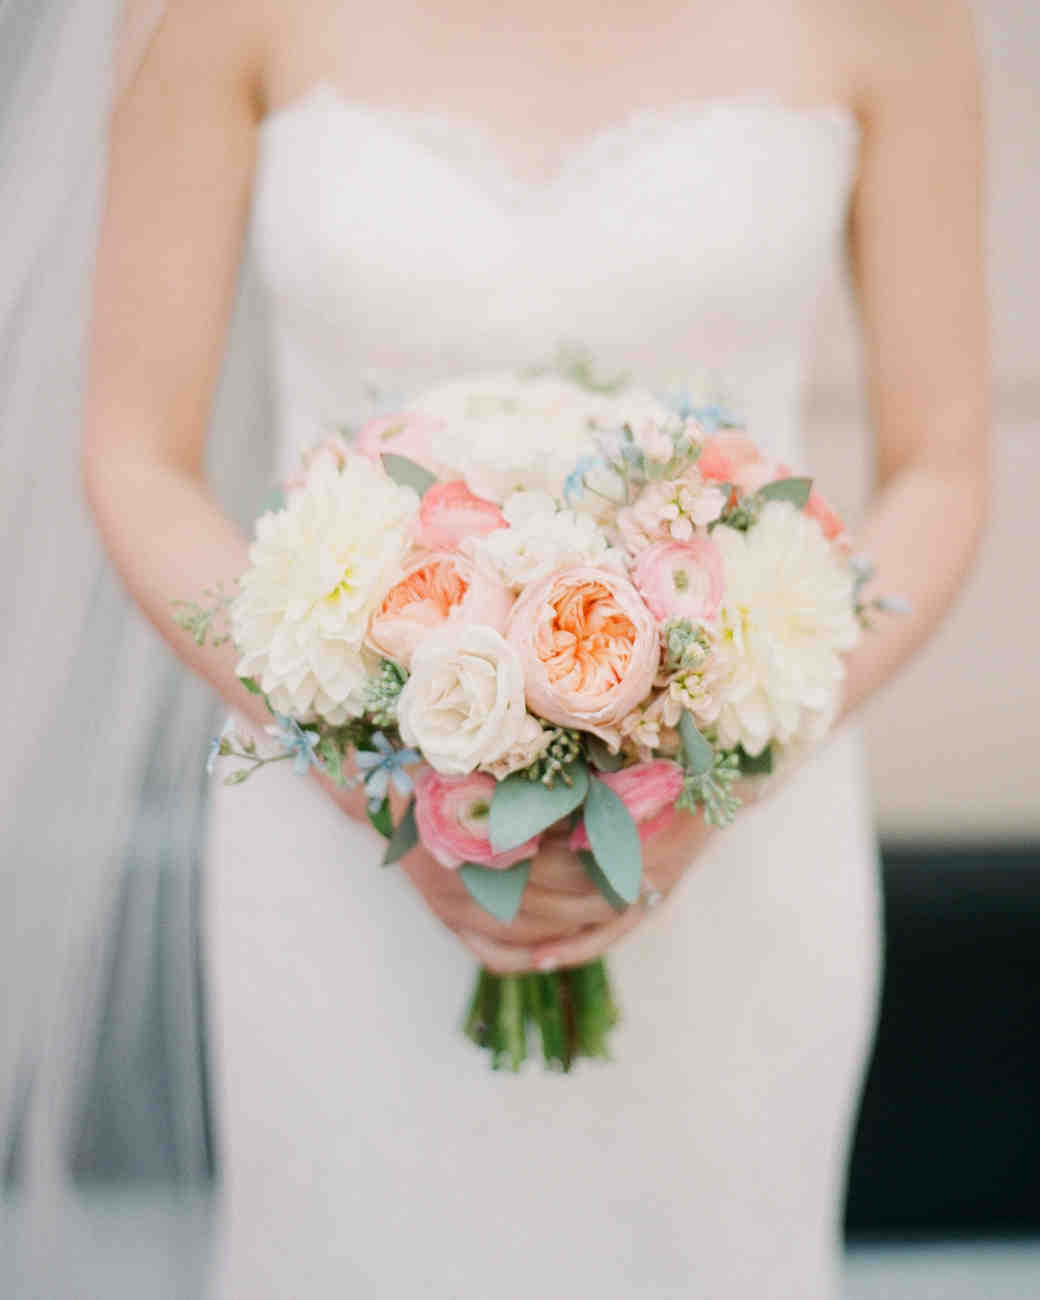 Simple Blush and White Bridal Bouquet